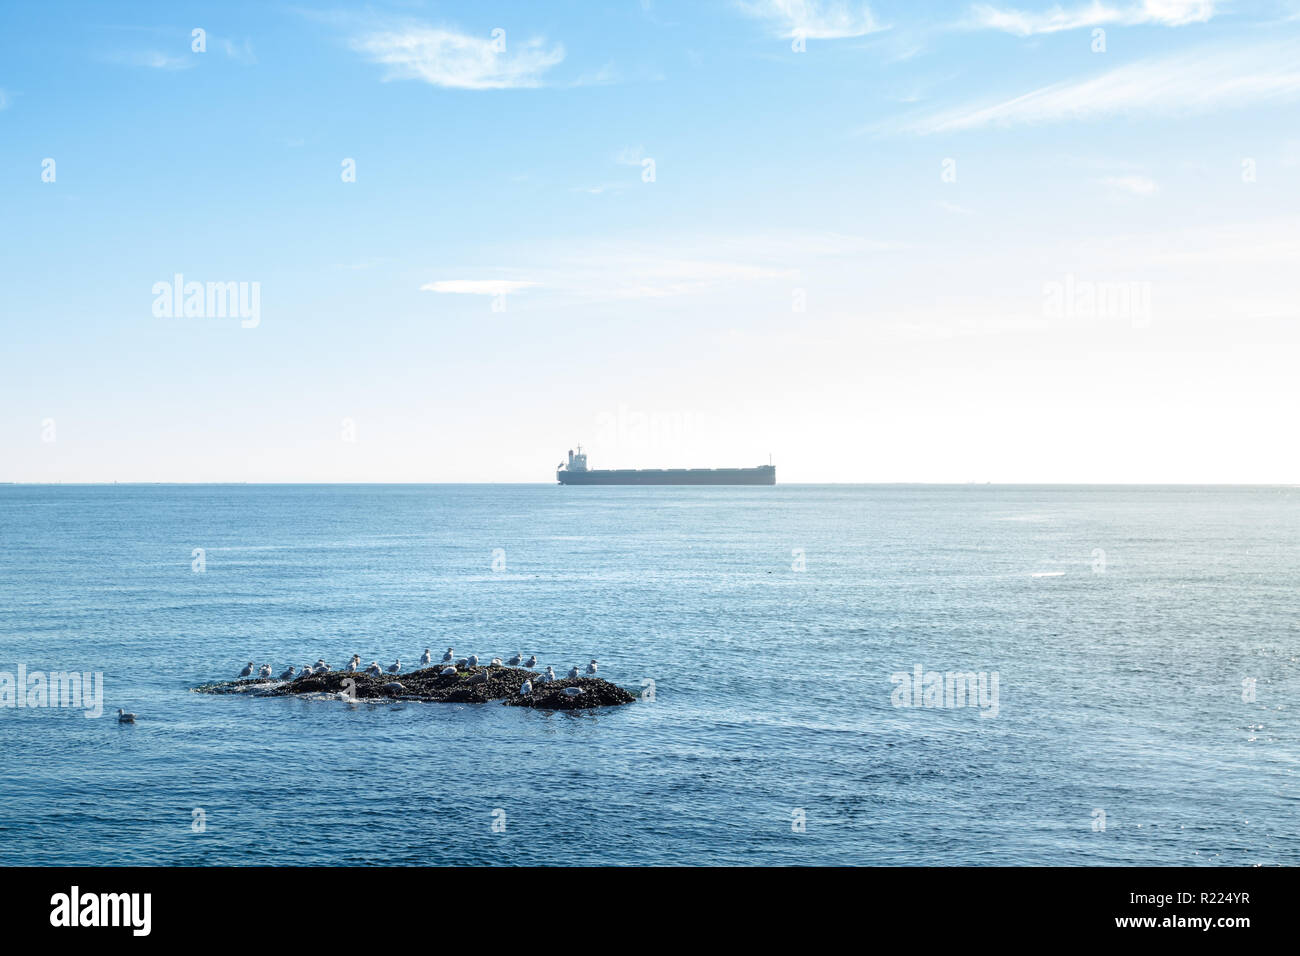 A view out onto the open ocean of the Georgia Strait of a gull rock and a tanker. - Stock Image